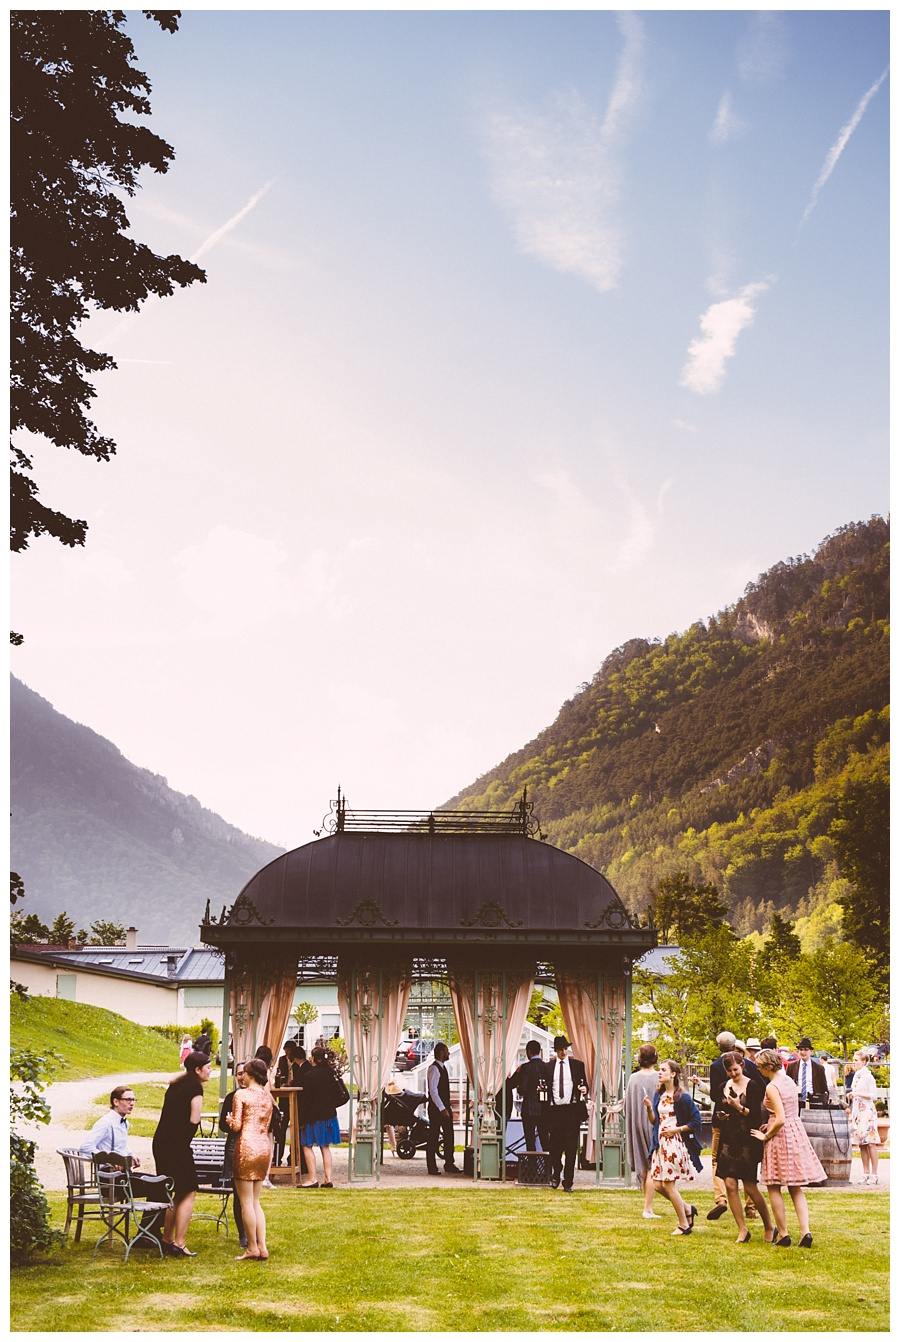 065Schloss_wartholz_Austria_weddings_WEB